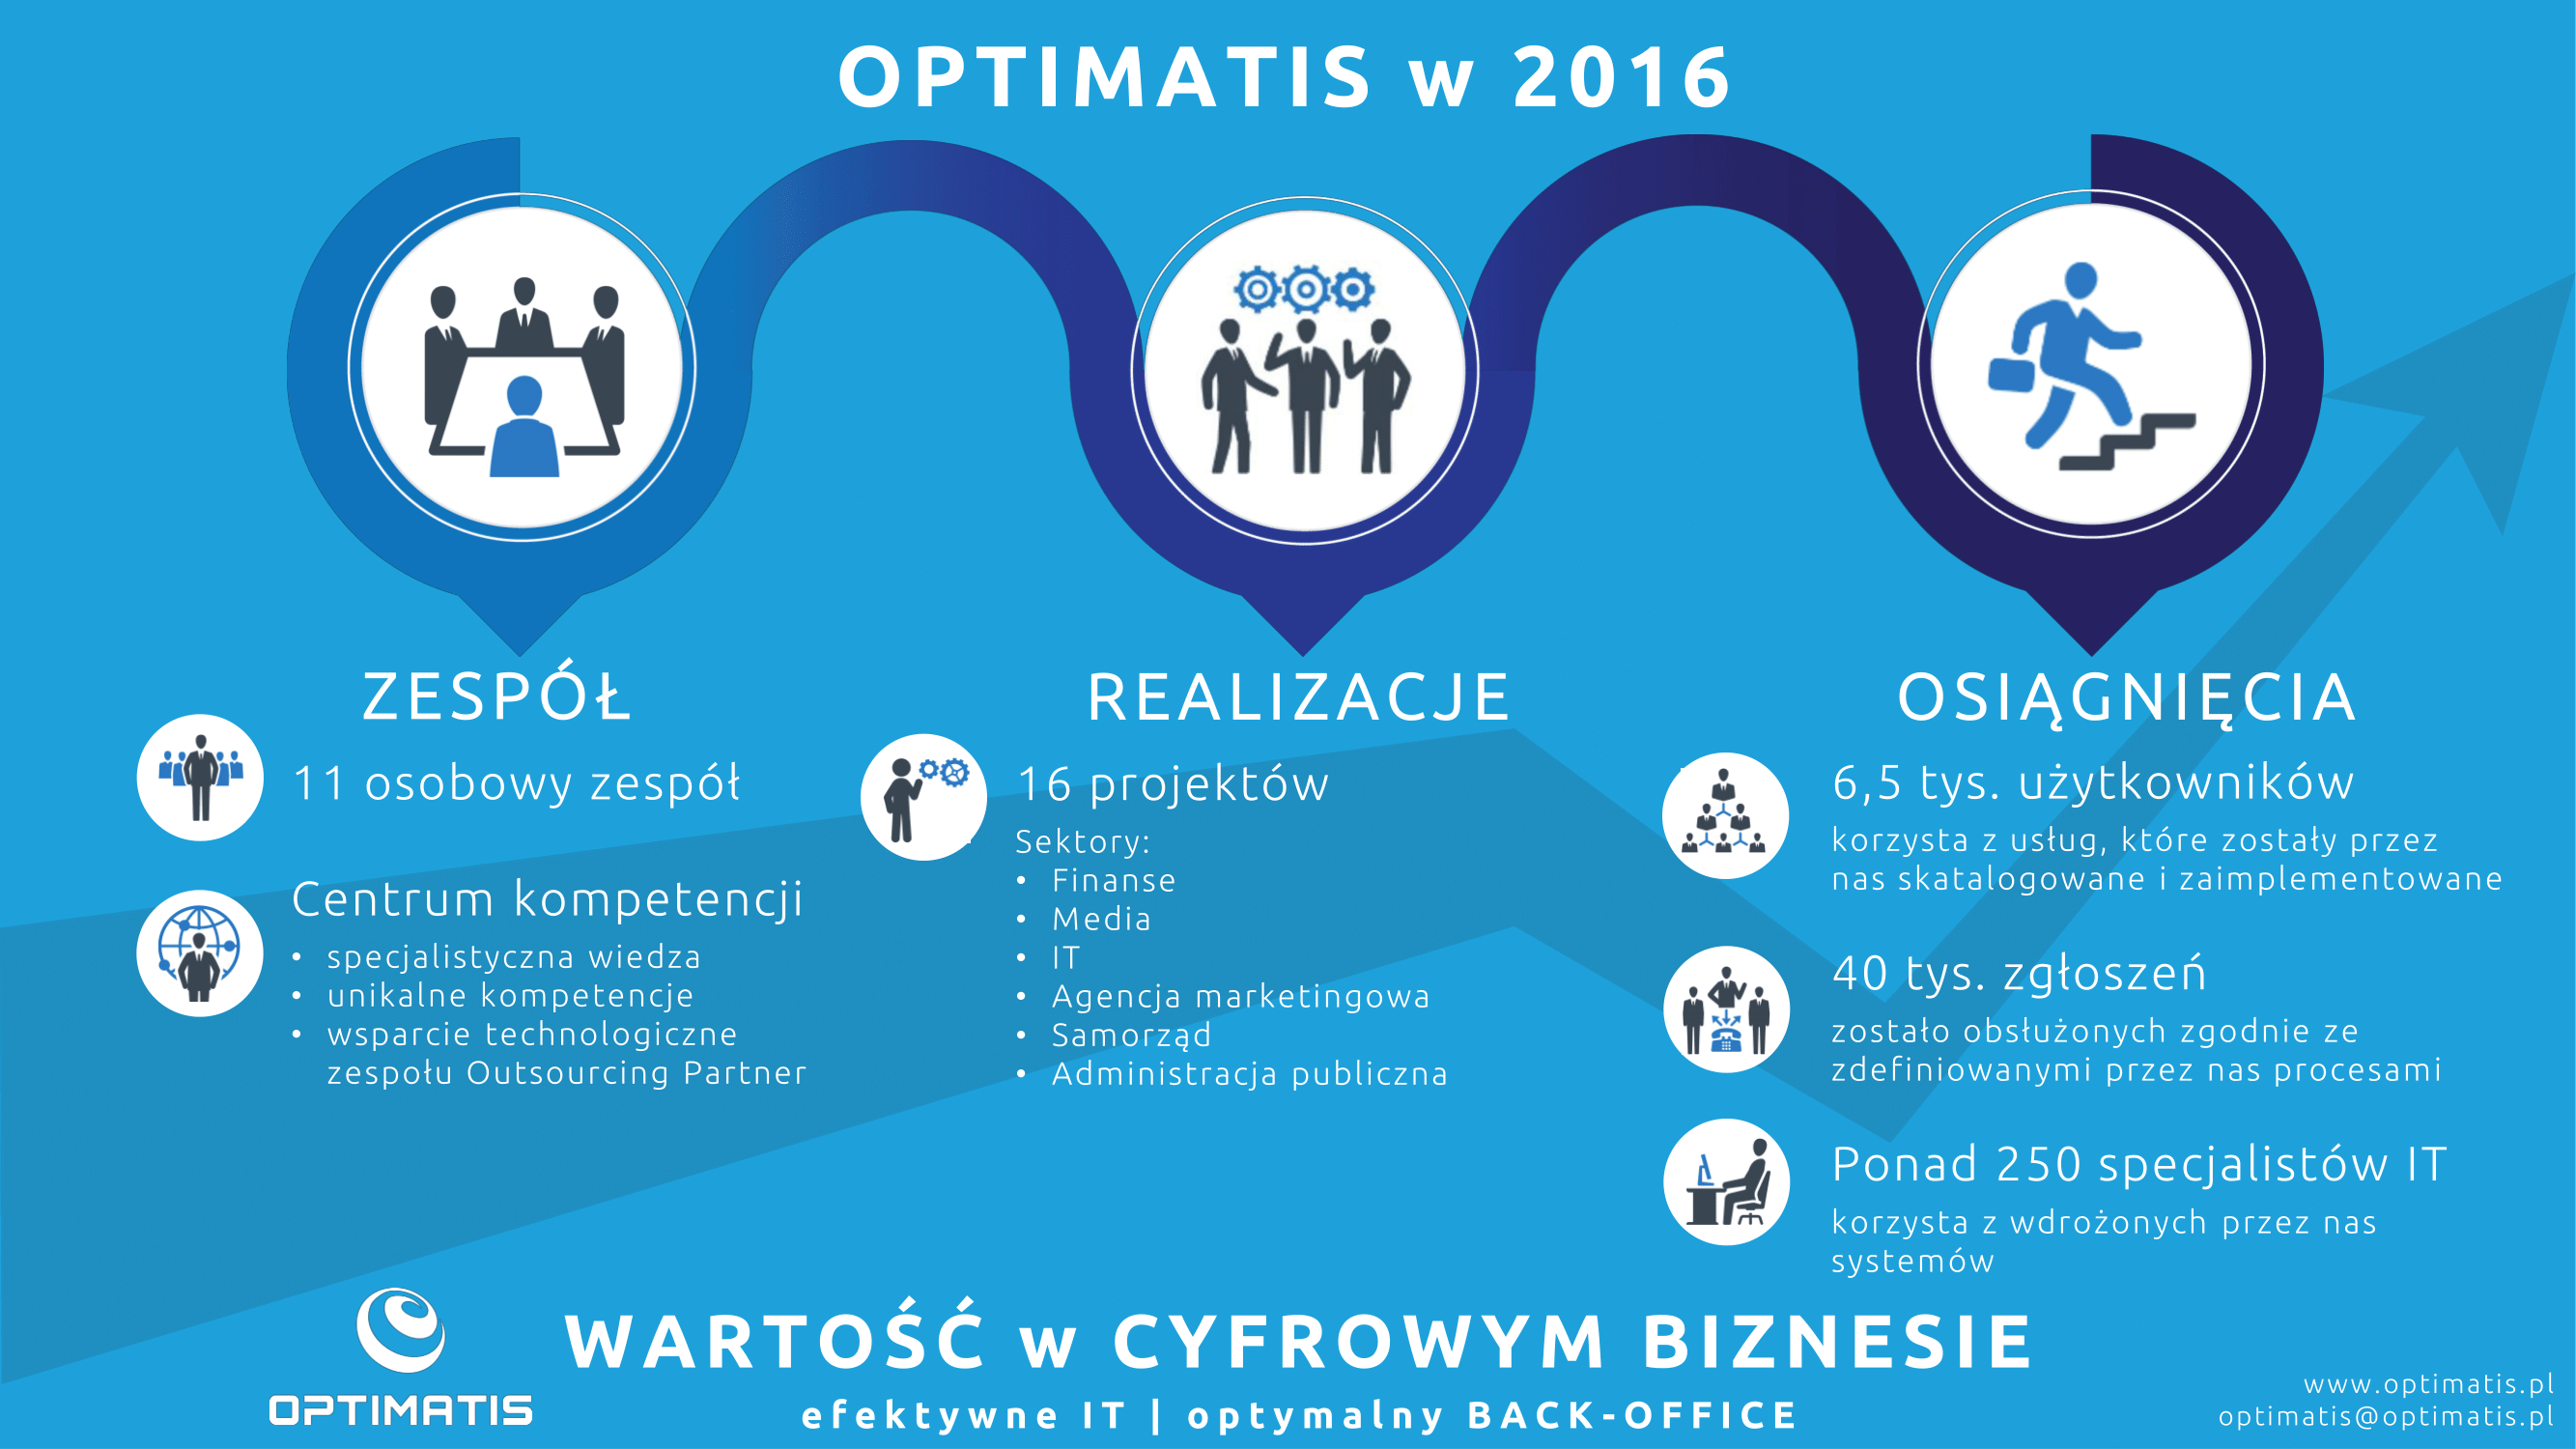 Optimatis w 2016